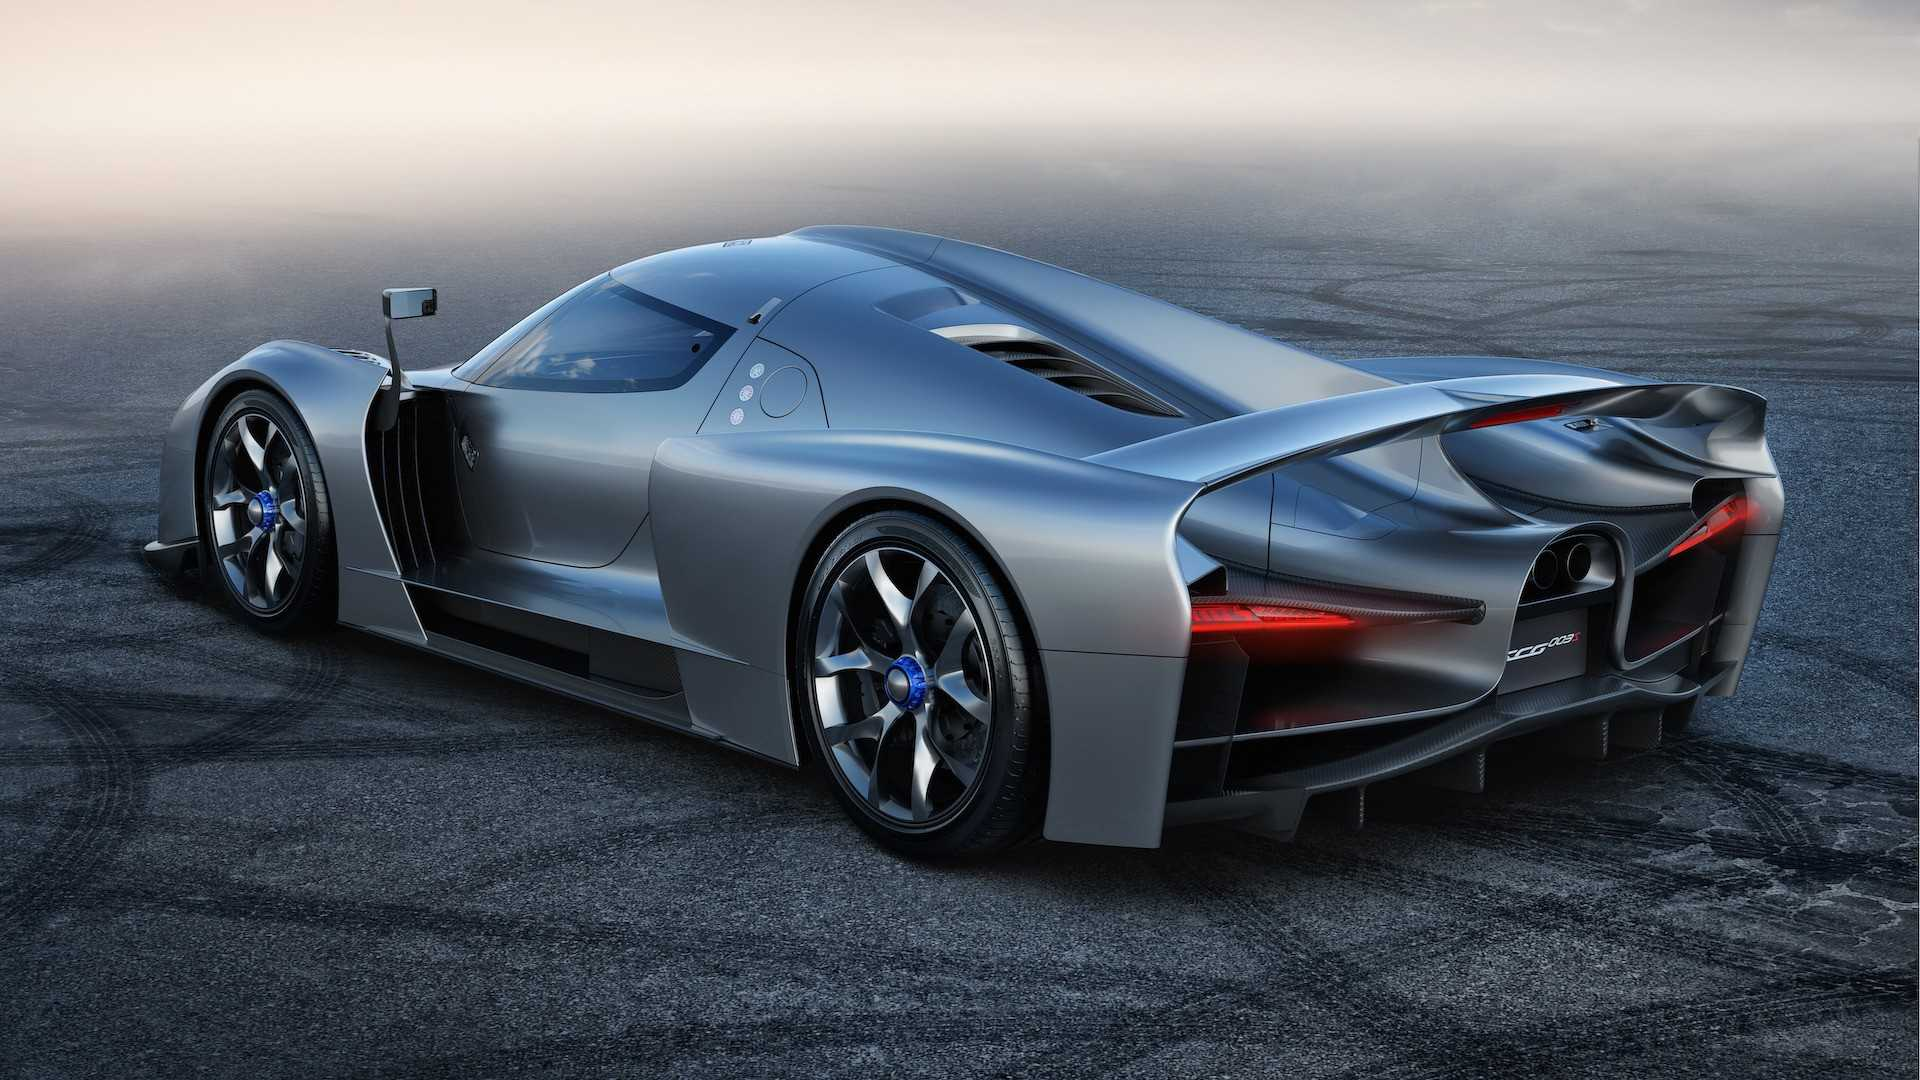 Final Teaser of the Mercedes-AMG Project One Hypercar